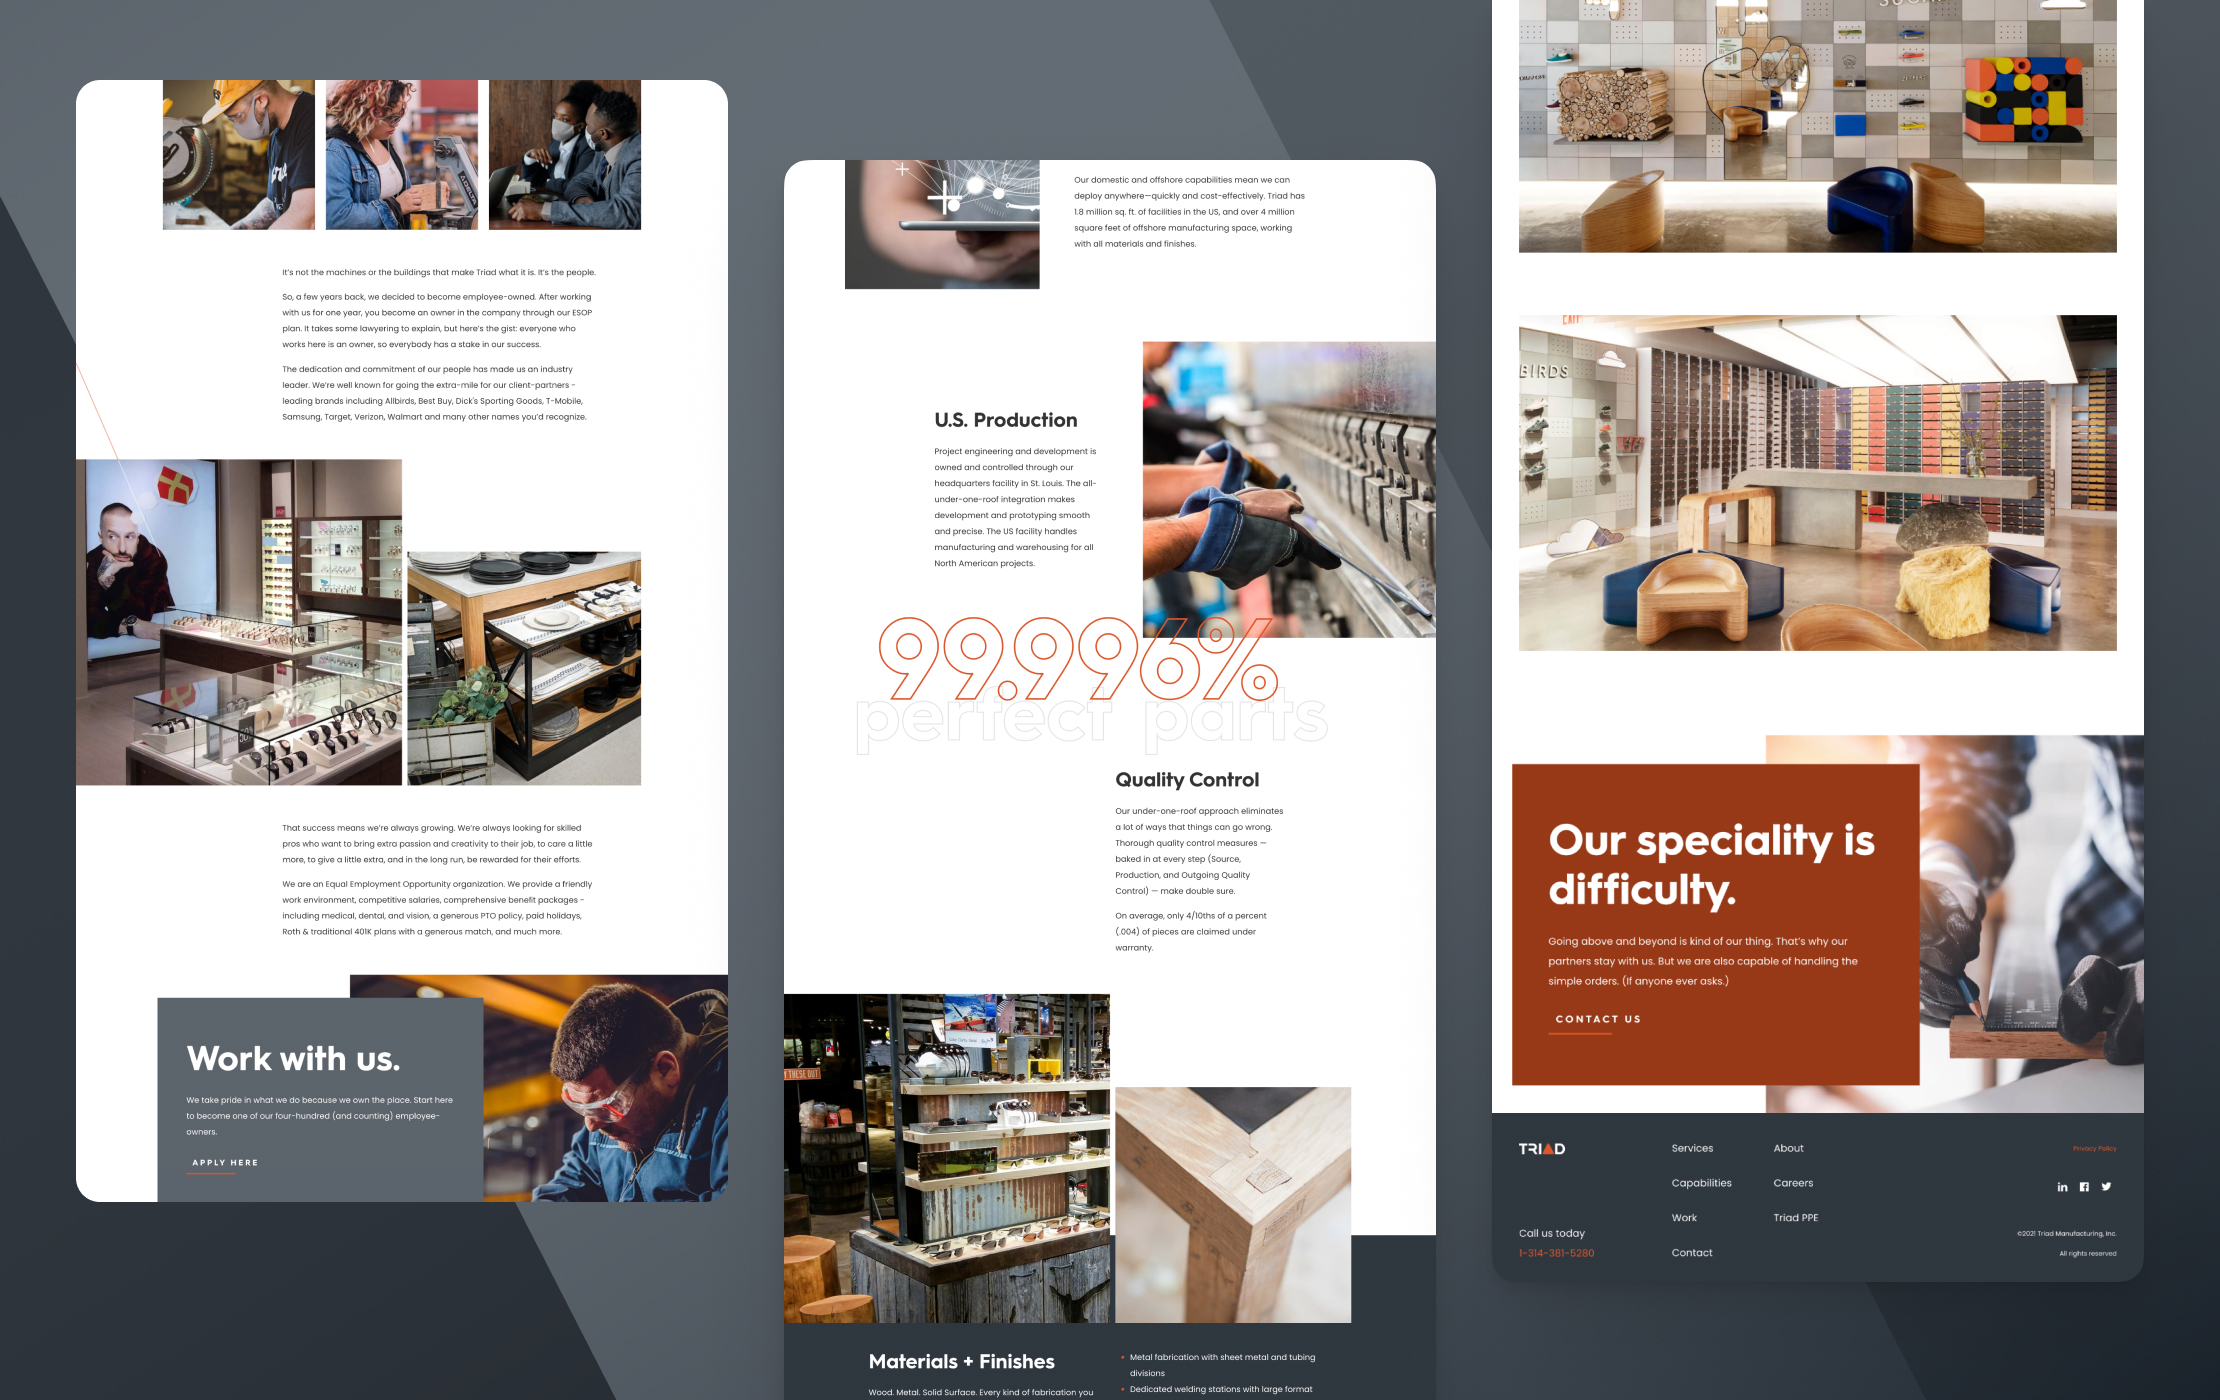 Various screen captures of Triad Manufacturing's website interior pages.